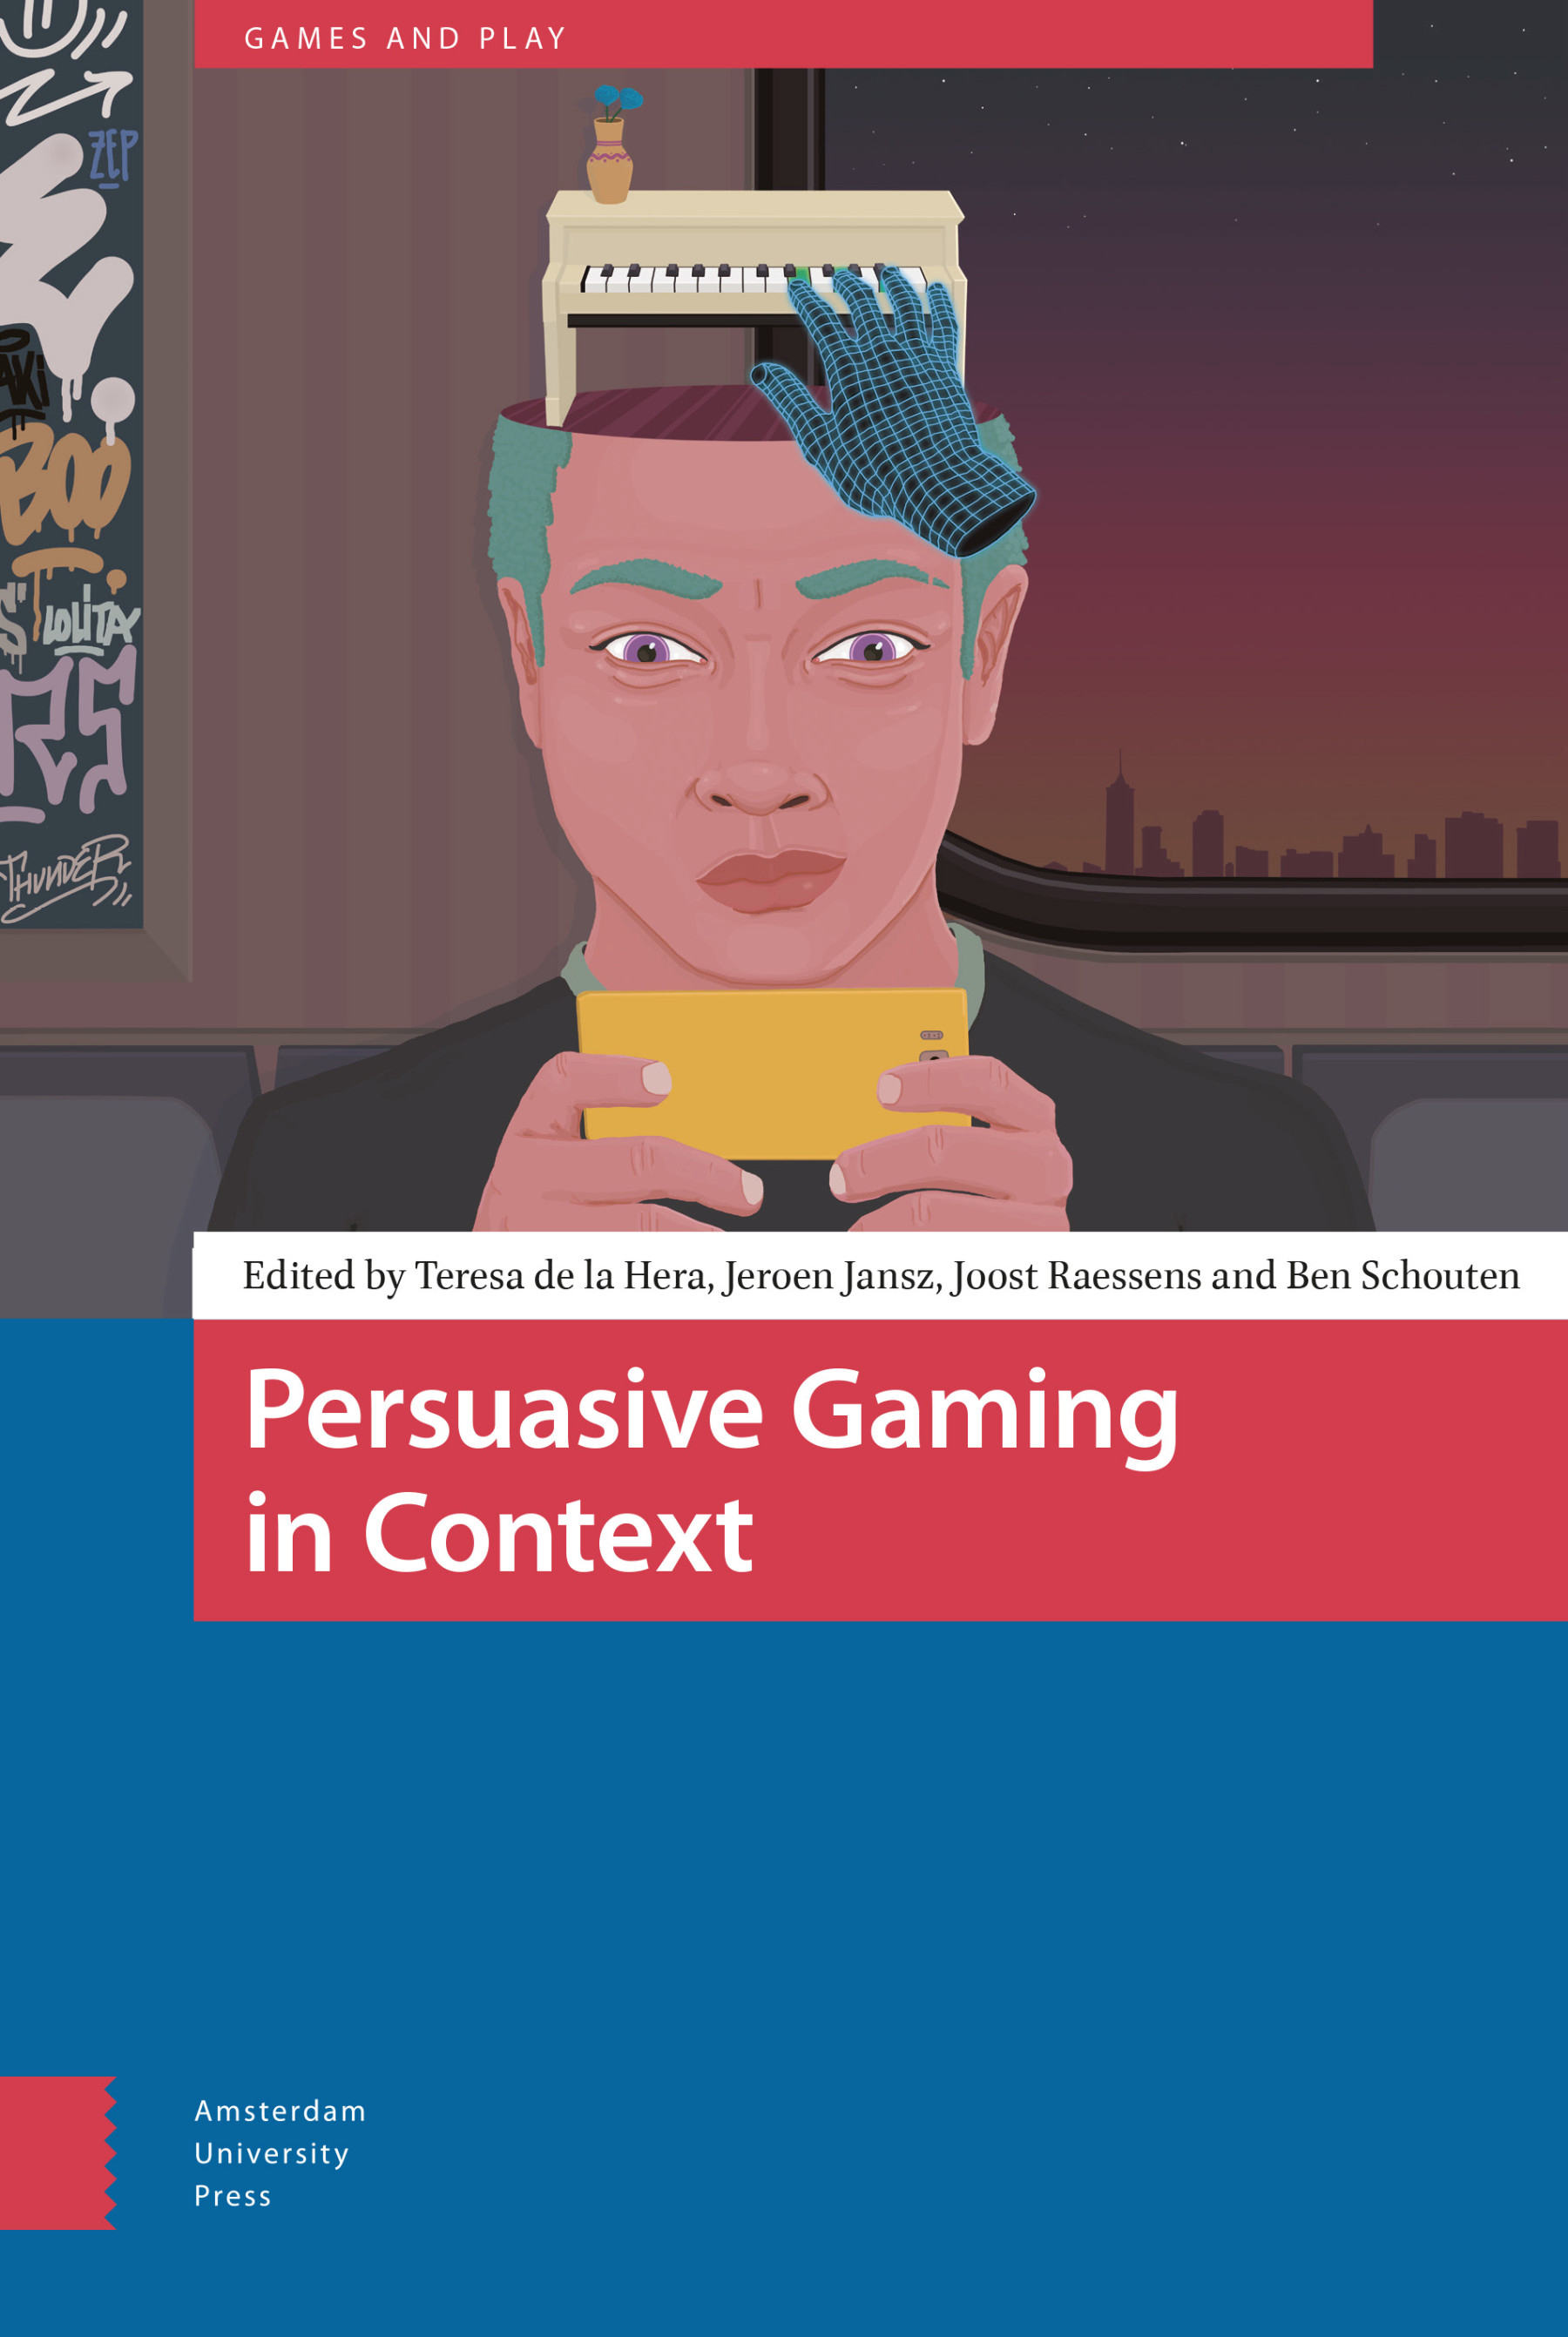 Book Cover, Persuasive Gaming in Context